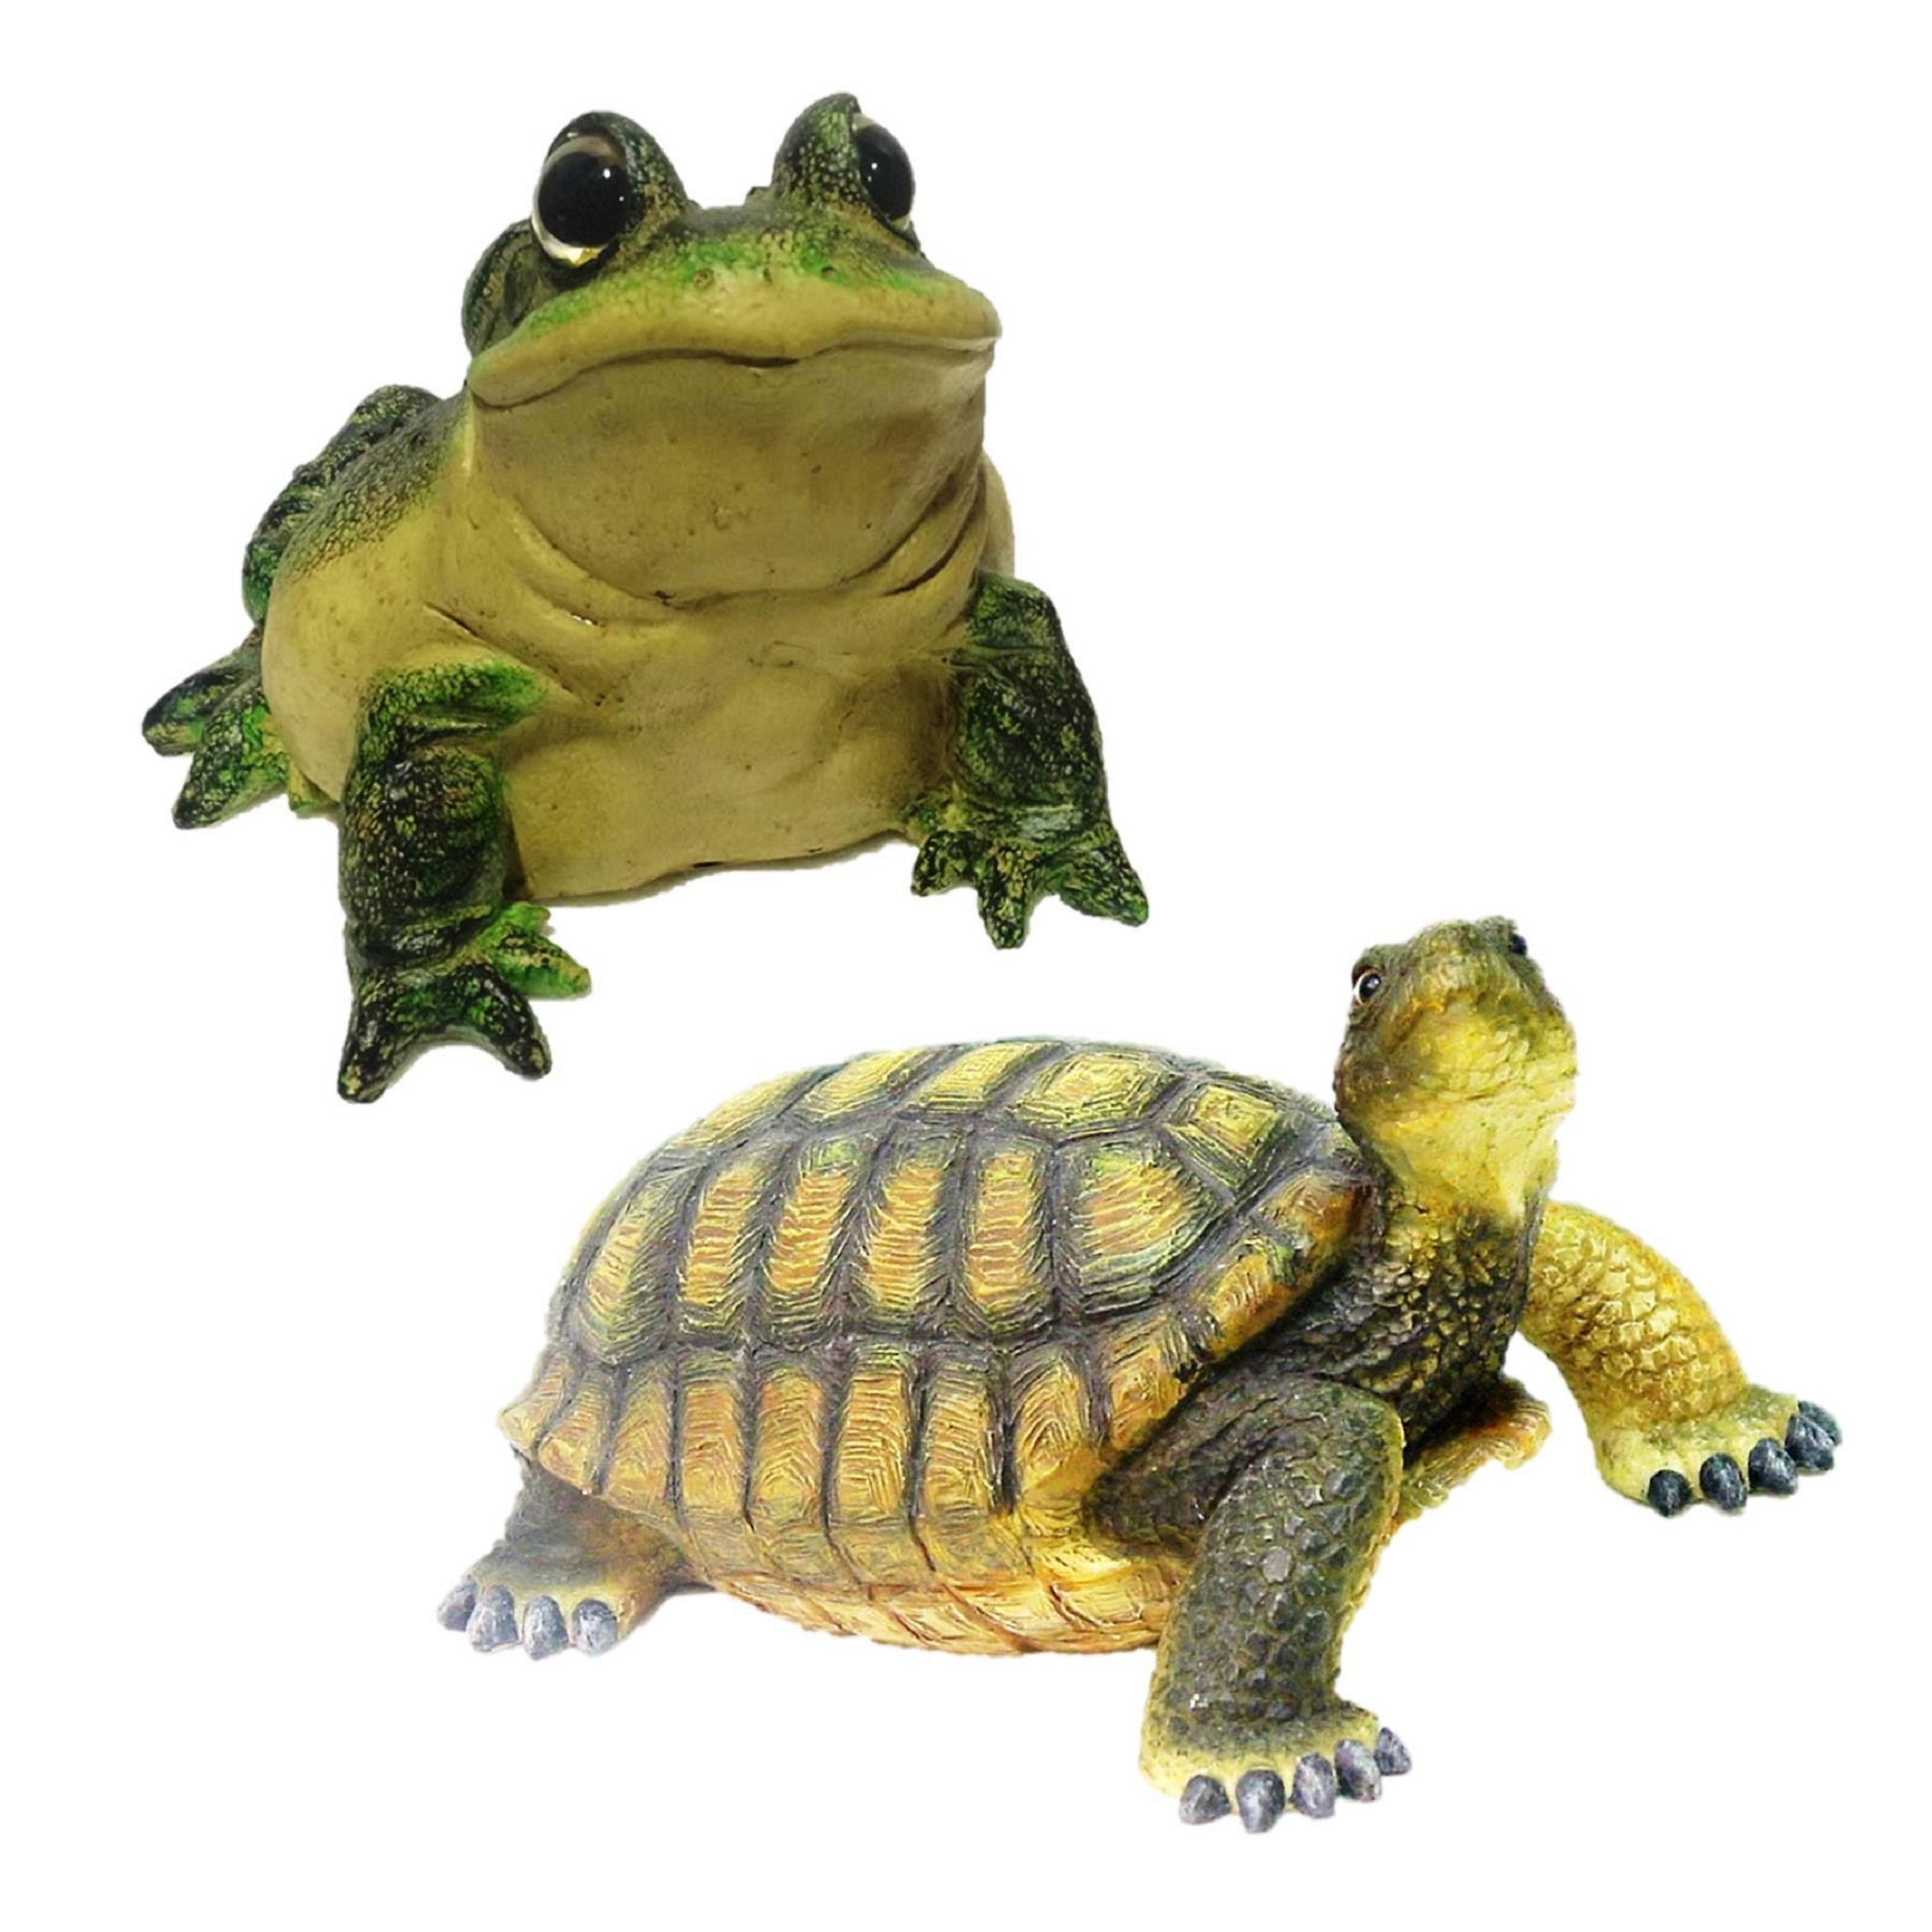 Homestyles Call of the Wild Turtle & Bullfrog Toad Home & Garden Nature Animal Statues 2-Pack